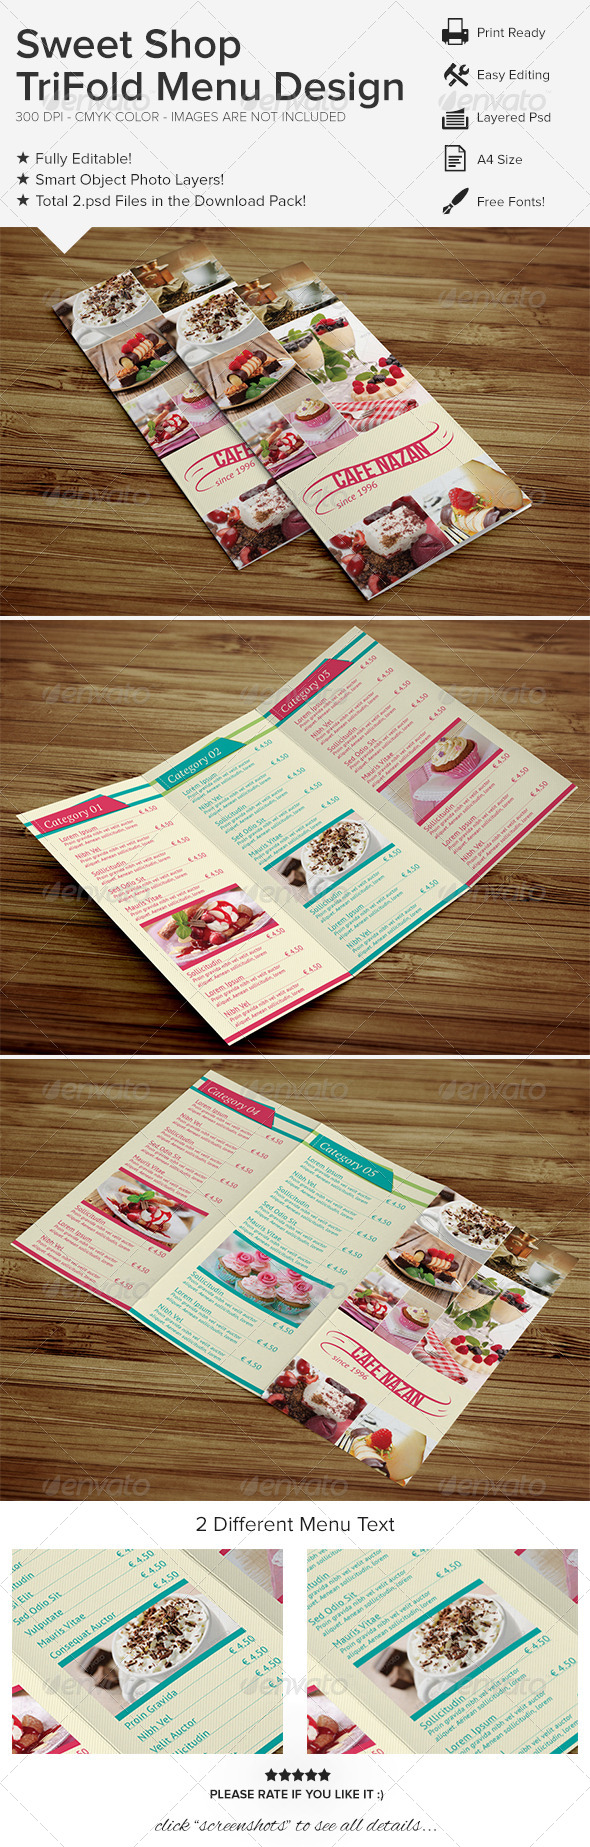 GraphicRiver Sweet Shop Trifold Menu Design 6747188